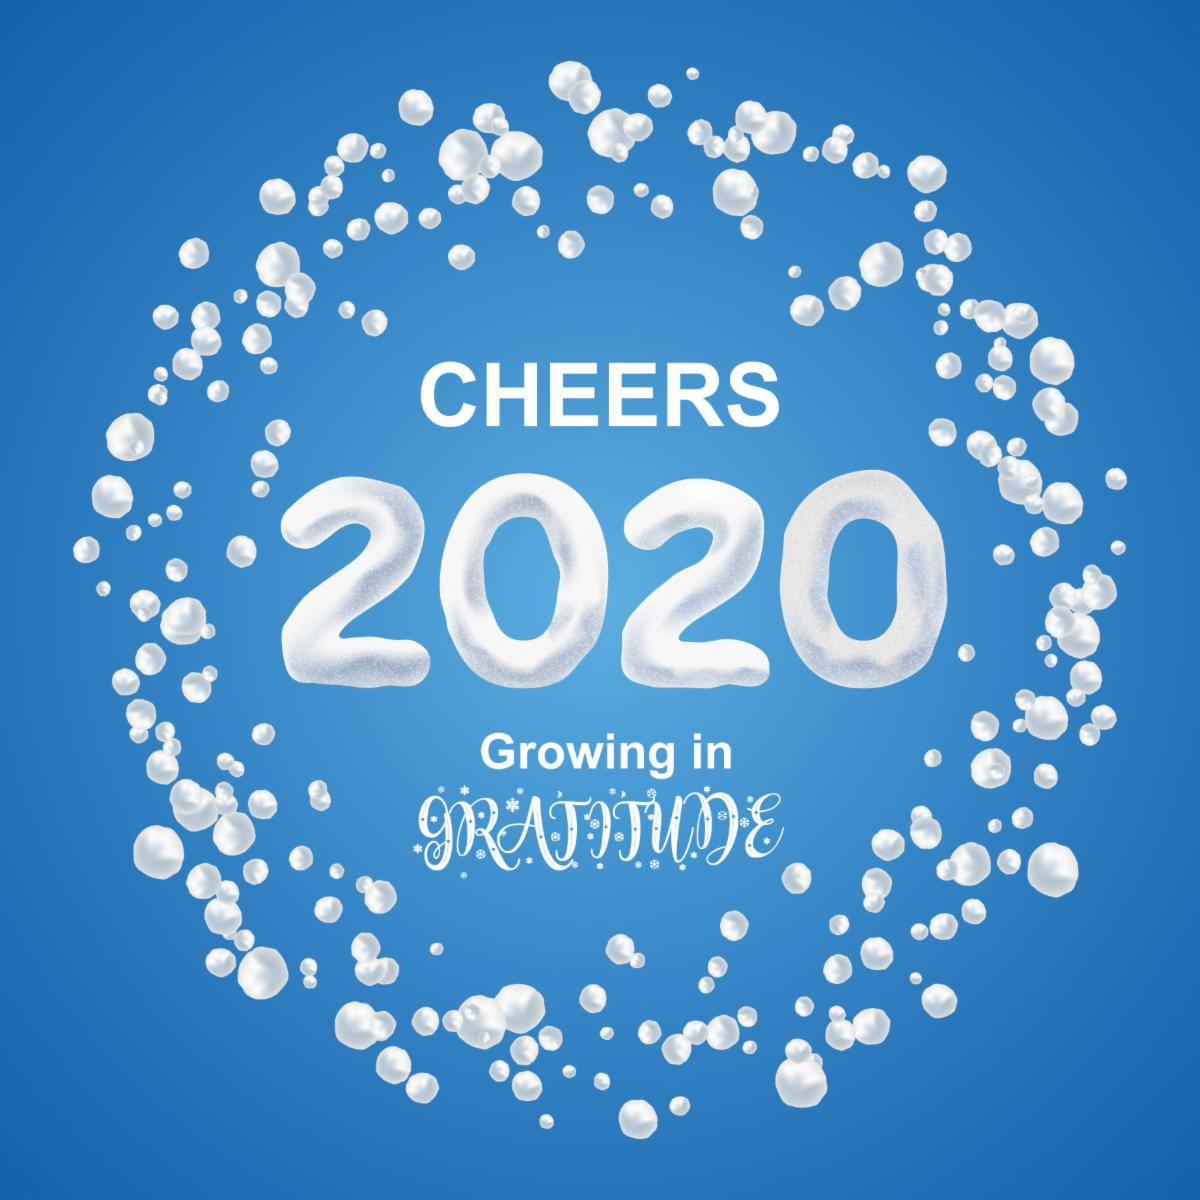 CHEERS 2020 Growing in GRATITUDE - Donate Now at https://ncheers.ejoinme.org/gig